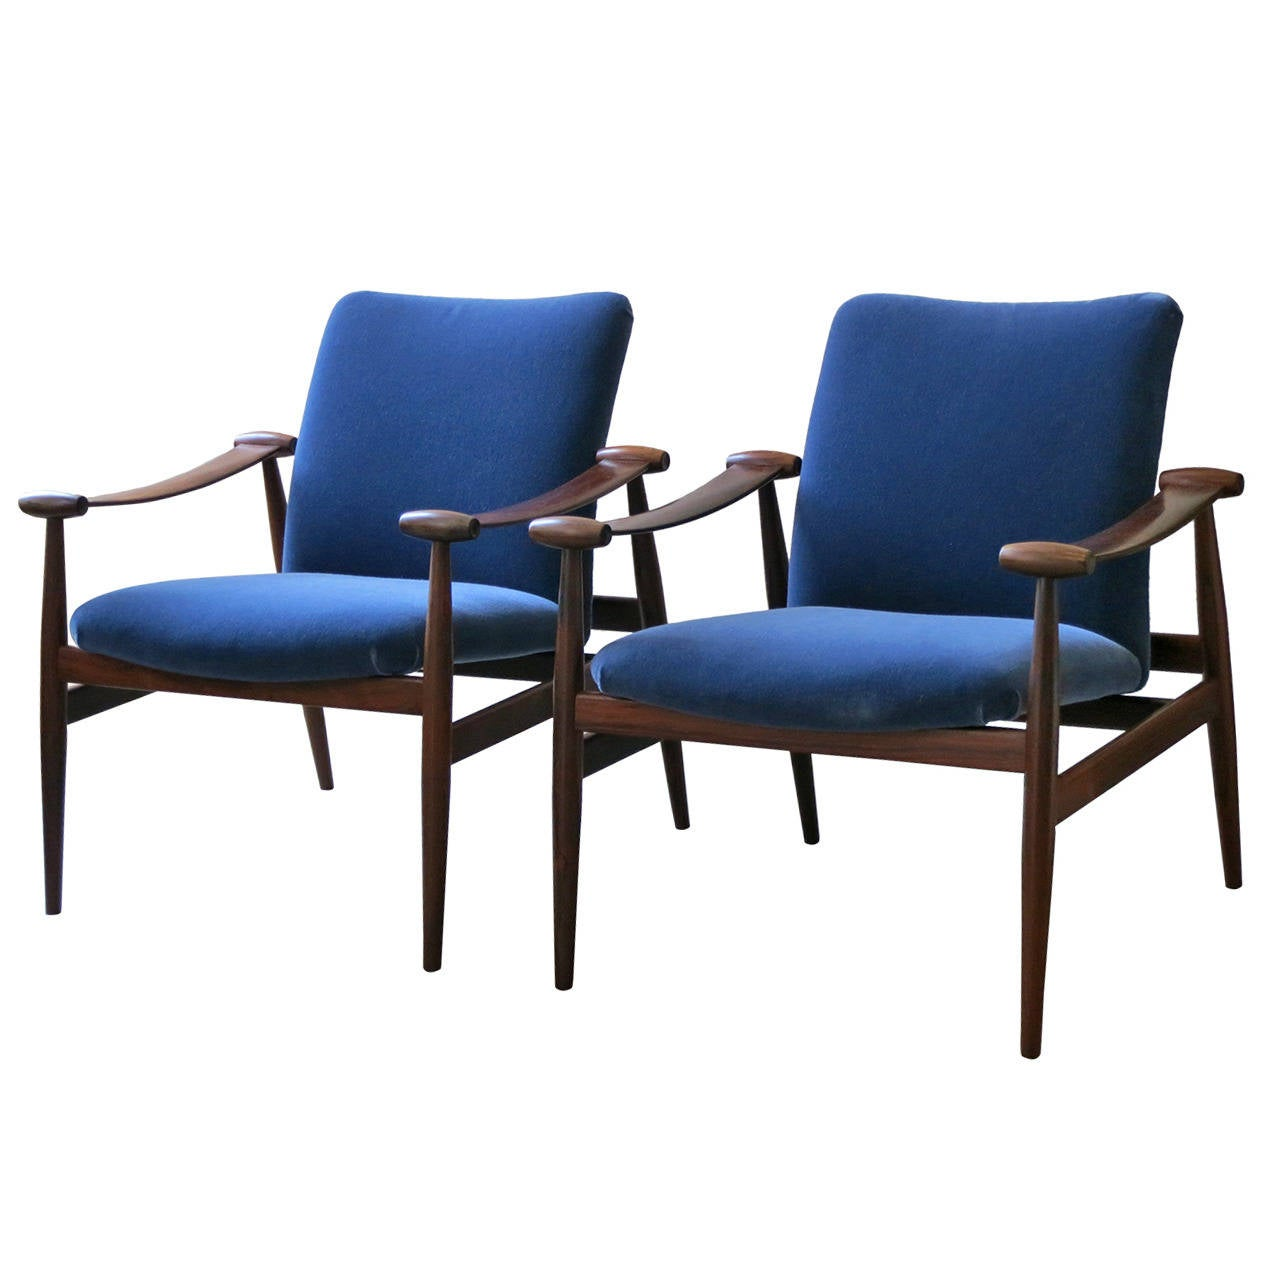 Finn Juhl early pair of  Spade Chairs  in rosewood with blue mohair upholstery  sc 1 st  1stDibs & Finn Juhl Lounge Chairs - 64 For Sale at 1stdibs